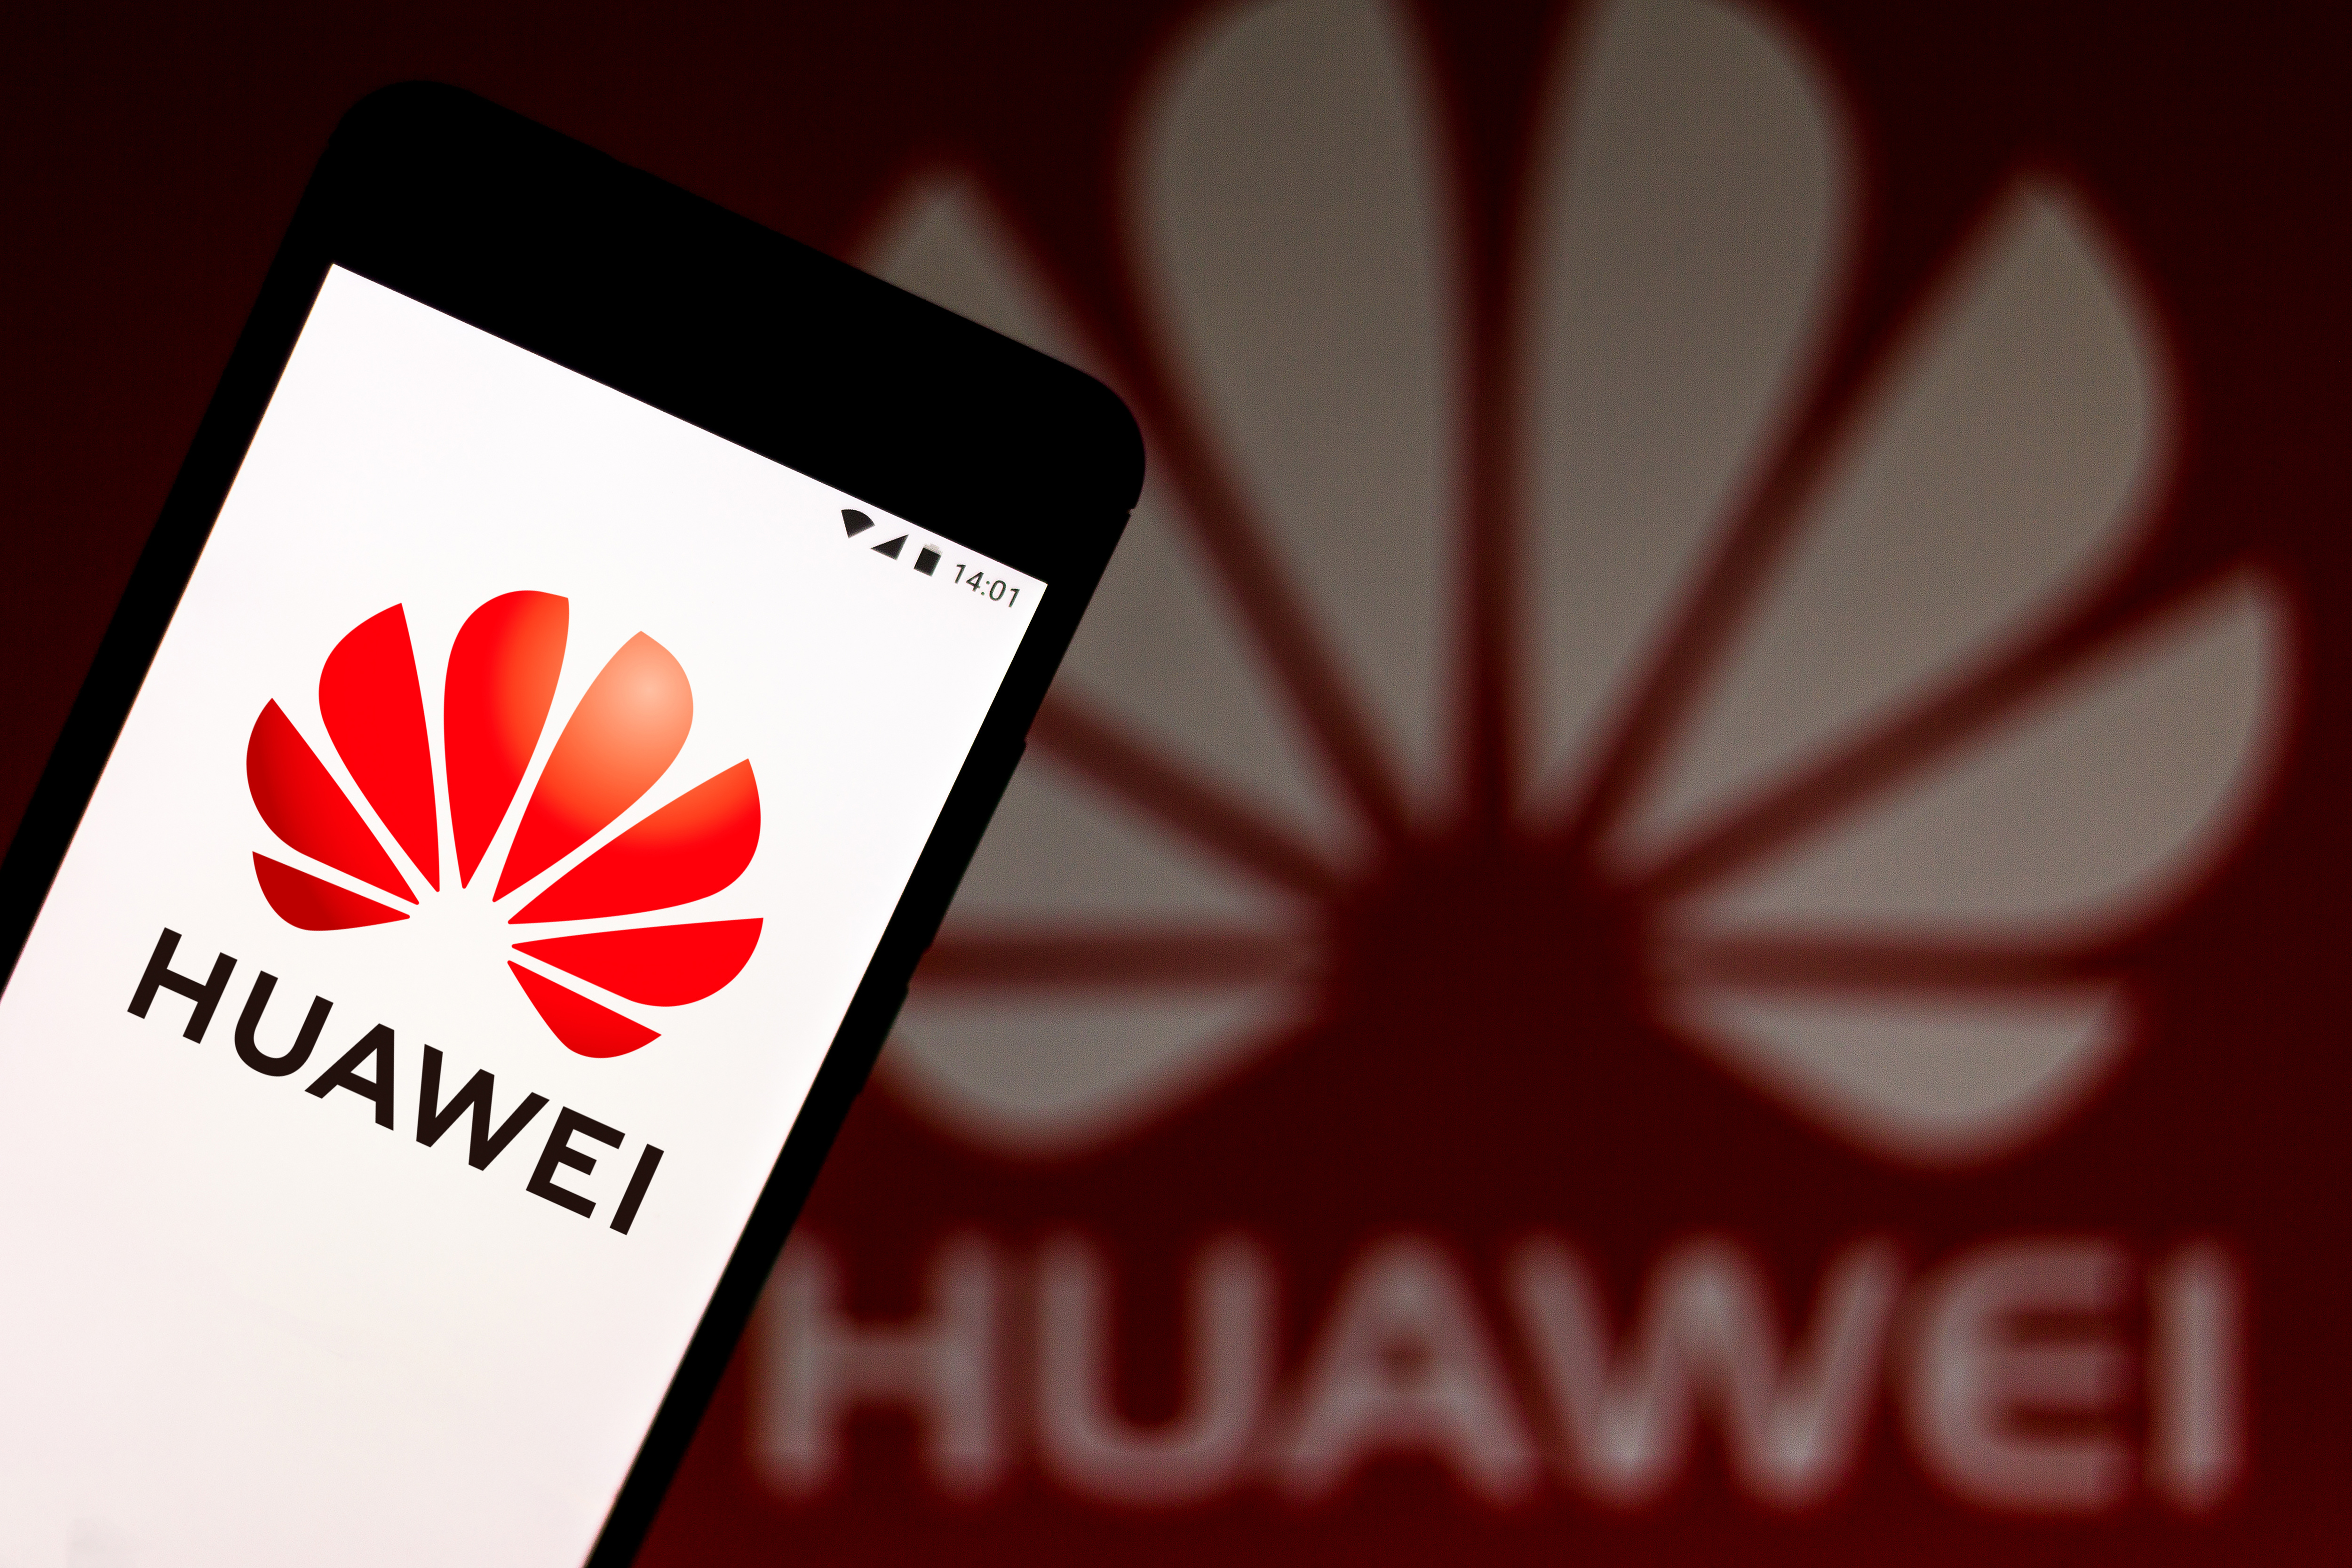 Huawei ayuda a Corea del Norte con red inalámbrica, dice Washington Post